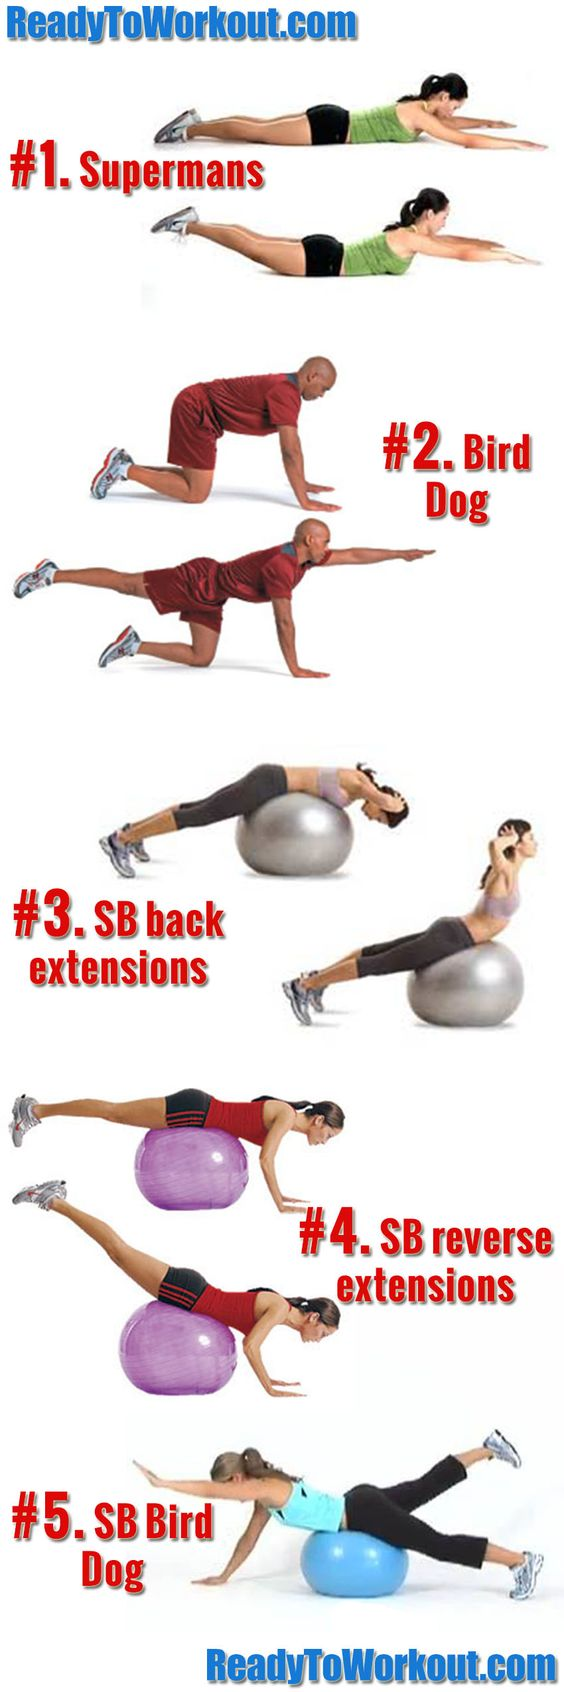 lower back exercises #home lower back workout #back extensions #bird dog exercise